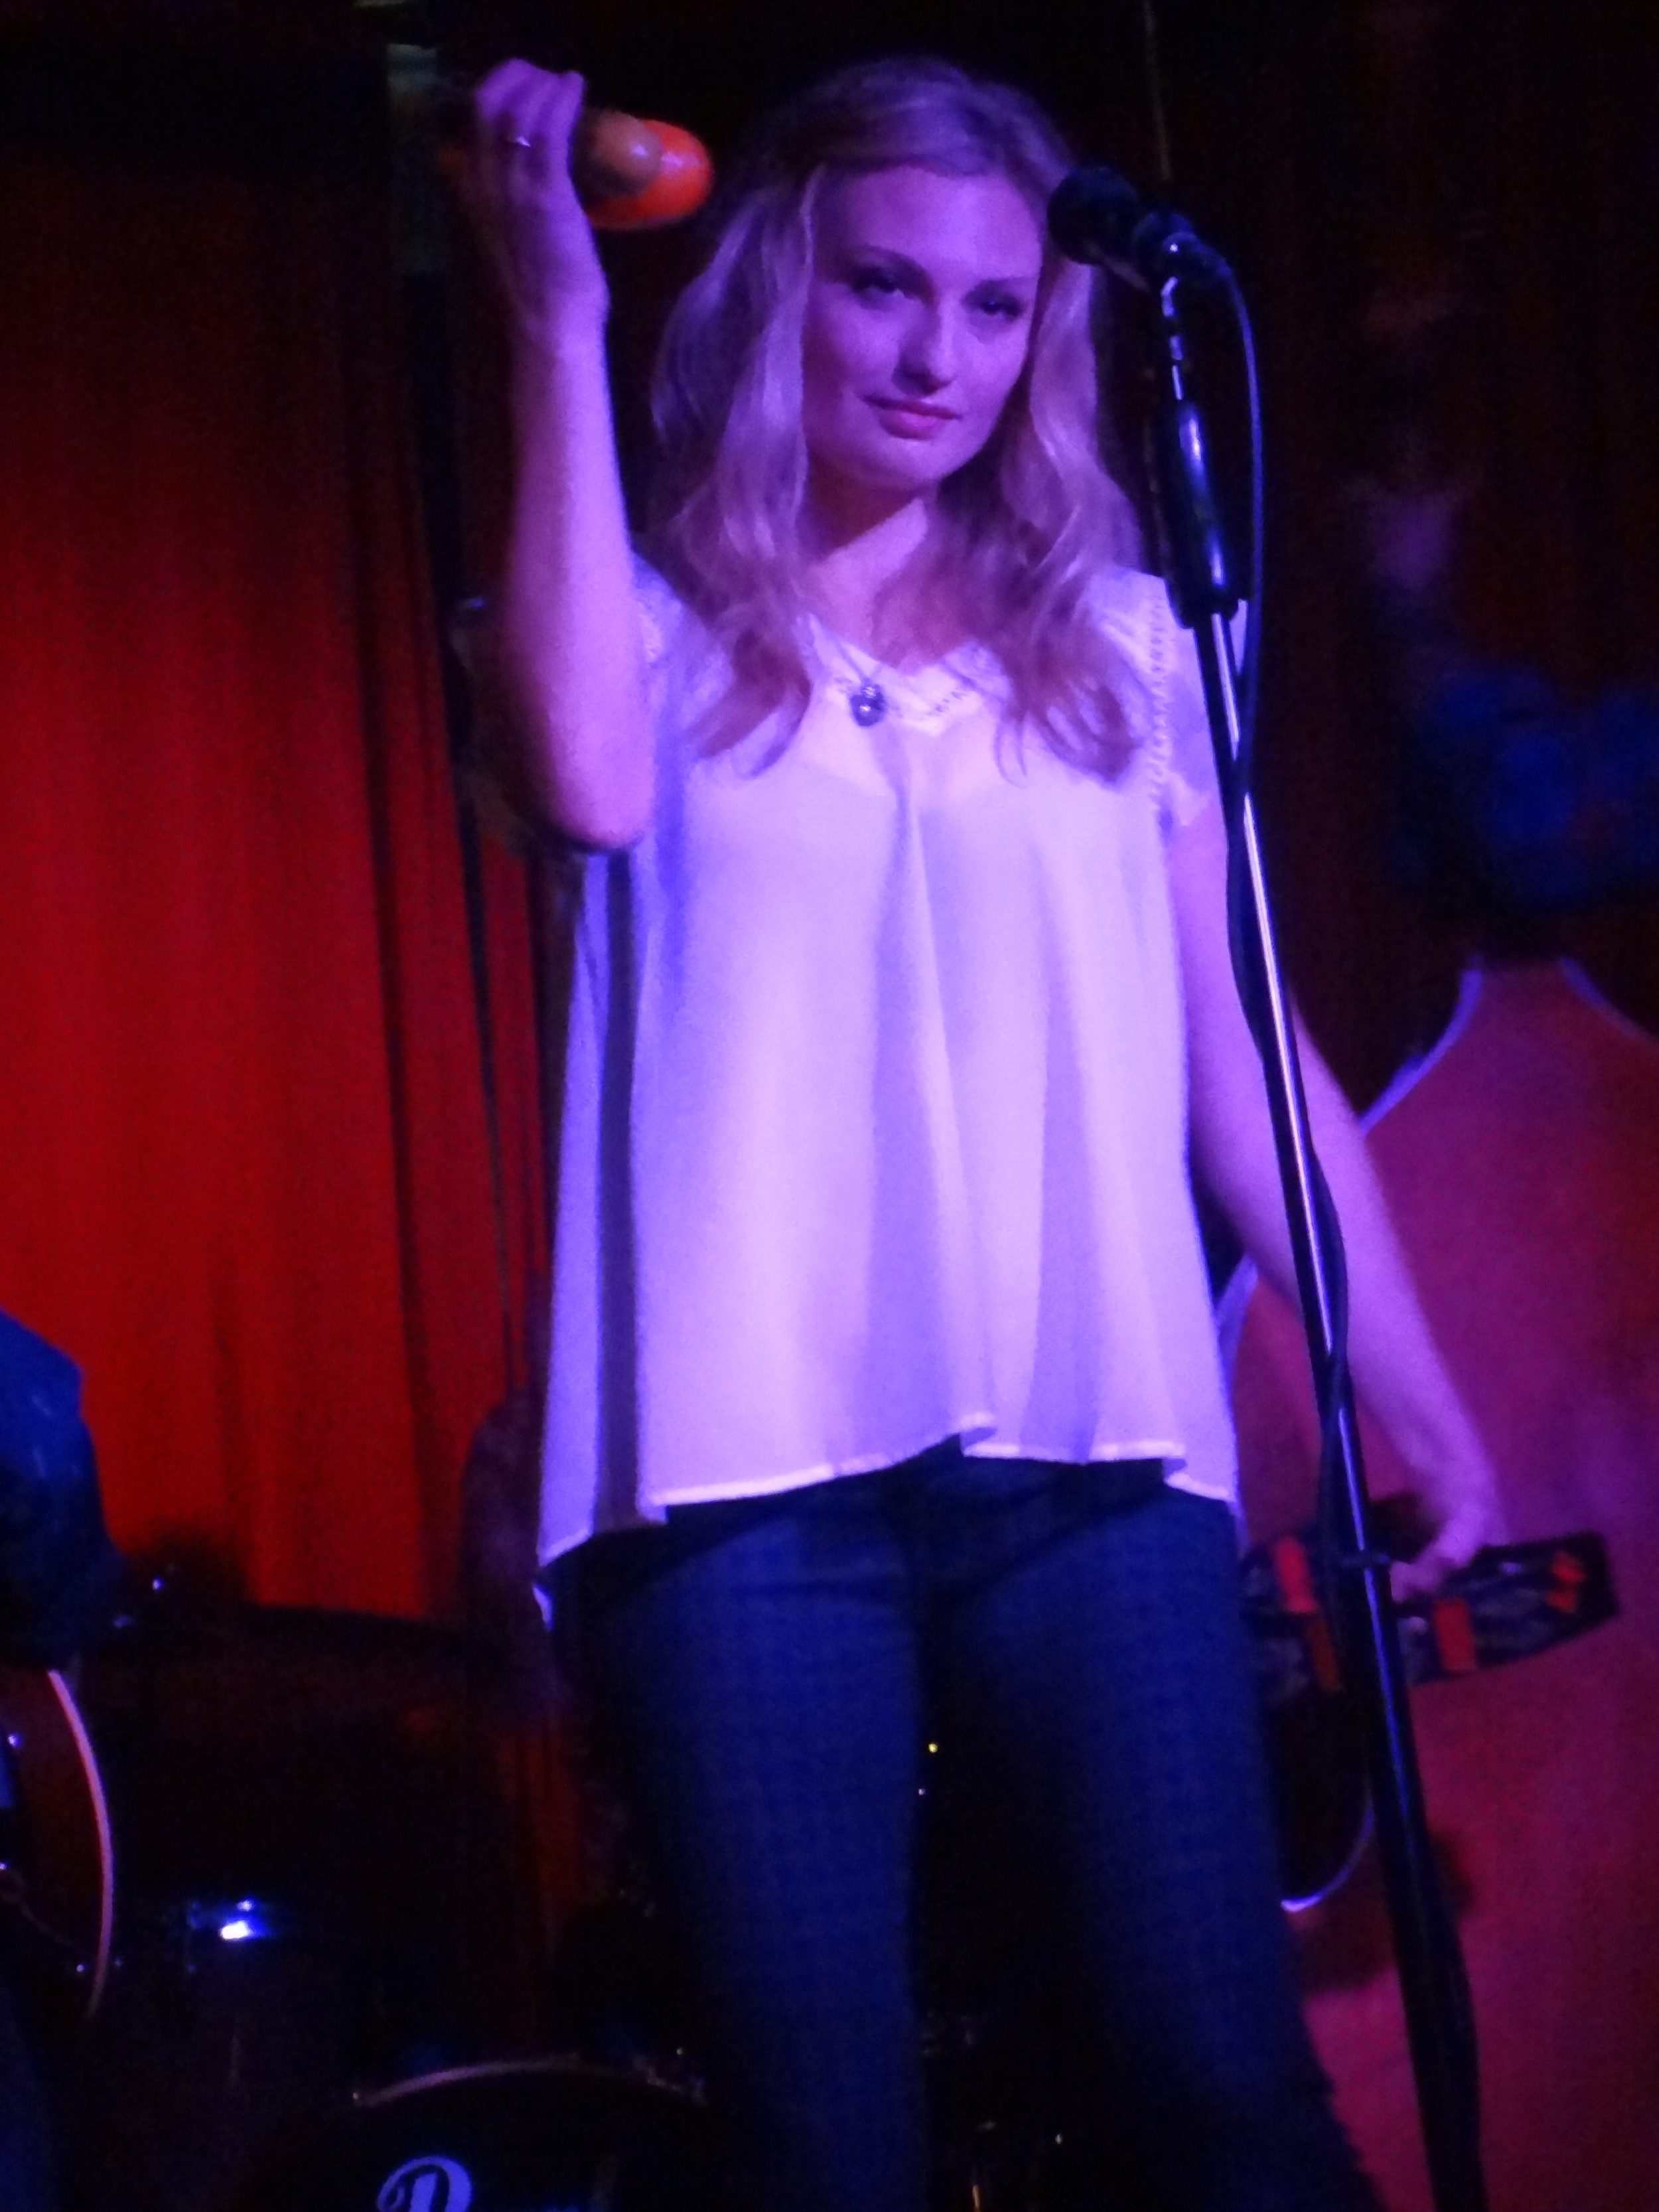 Anna Hanson from  Sound of Ghosts  at The Trip in Santa Monica. Photo by Cynthia Brando